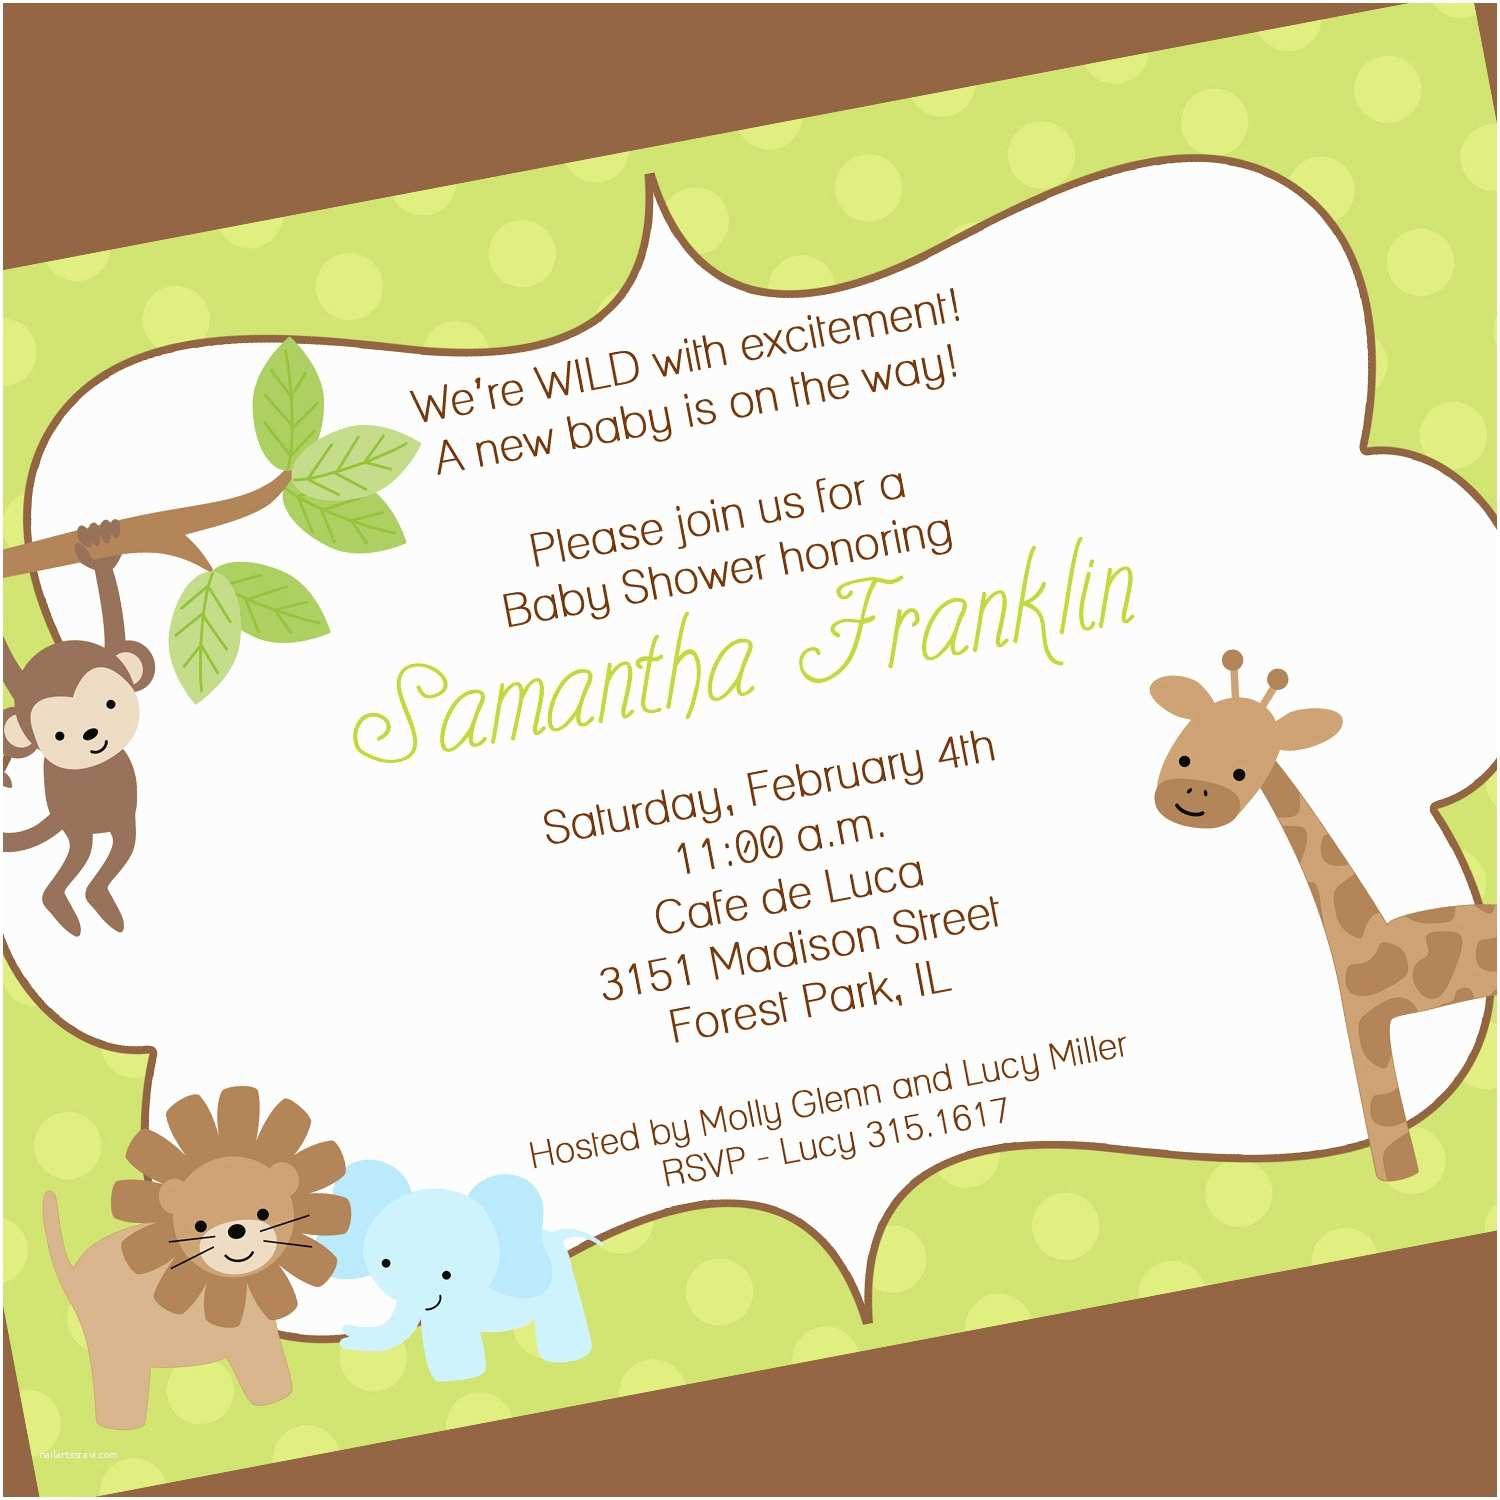 Baby Shower Invitation Wording Jungle theme Baby Shower Invitation Wording